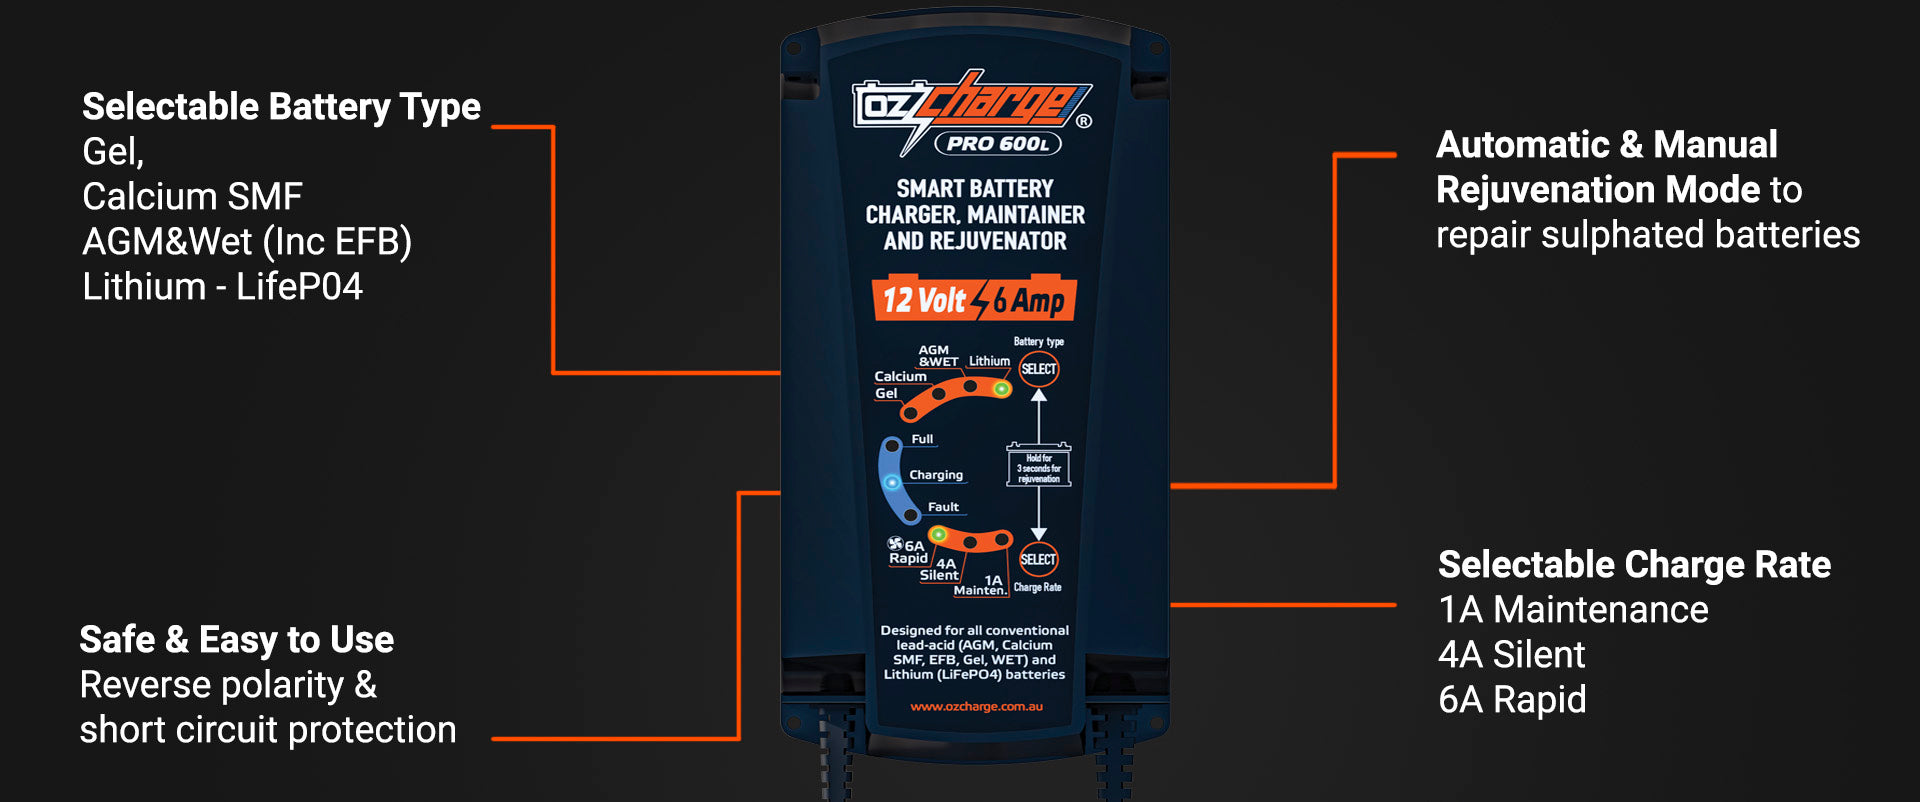 OzCharge Pro600L Lithium 6AA Battery Charger and maintainer